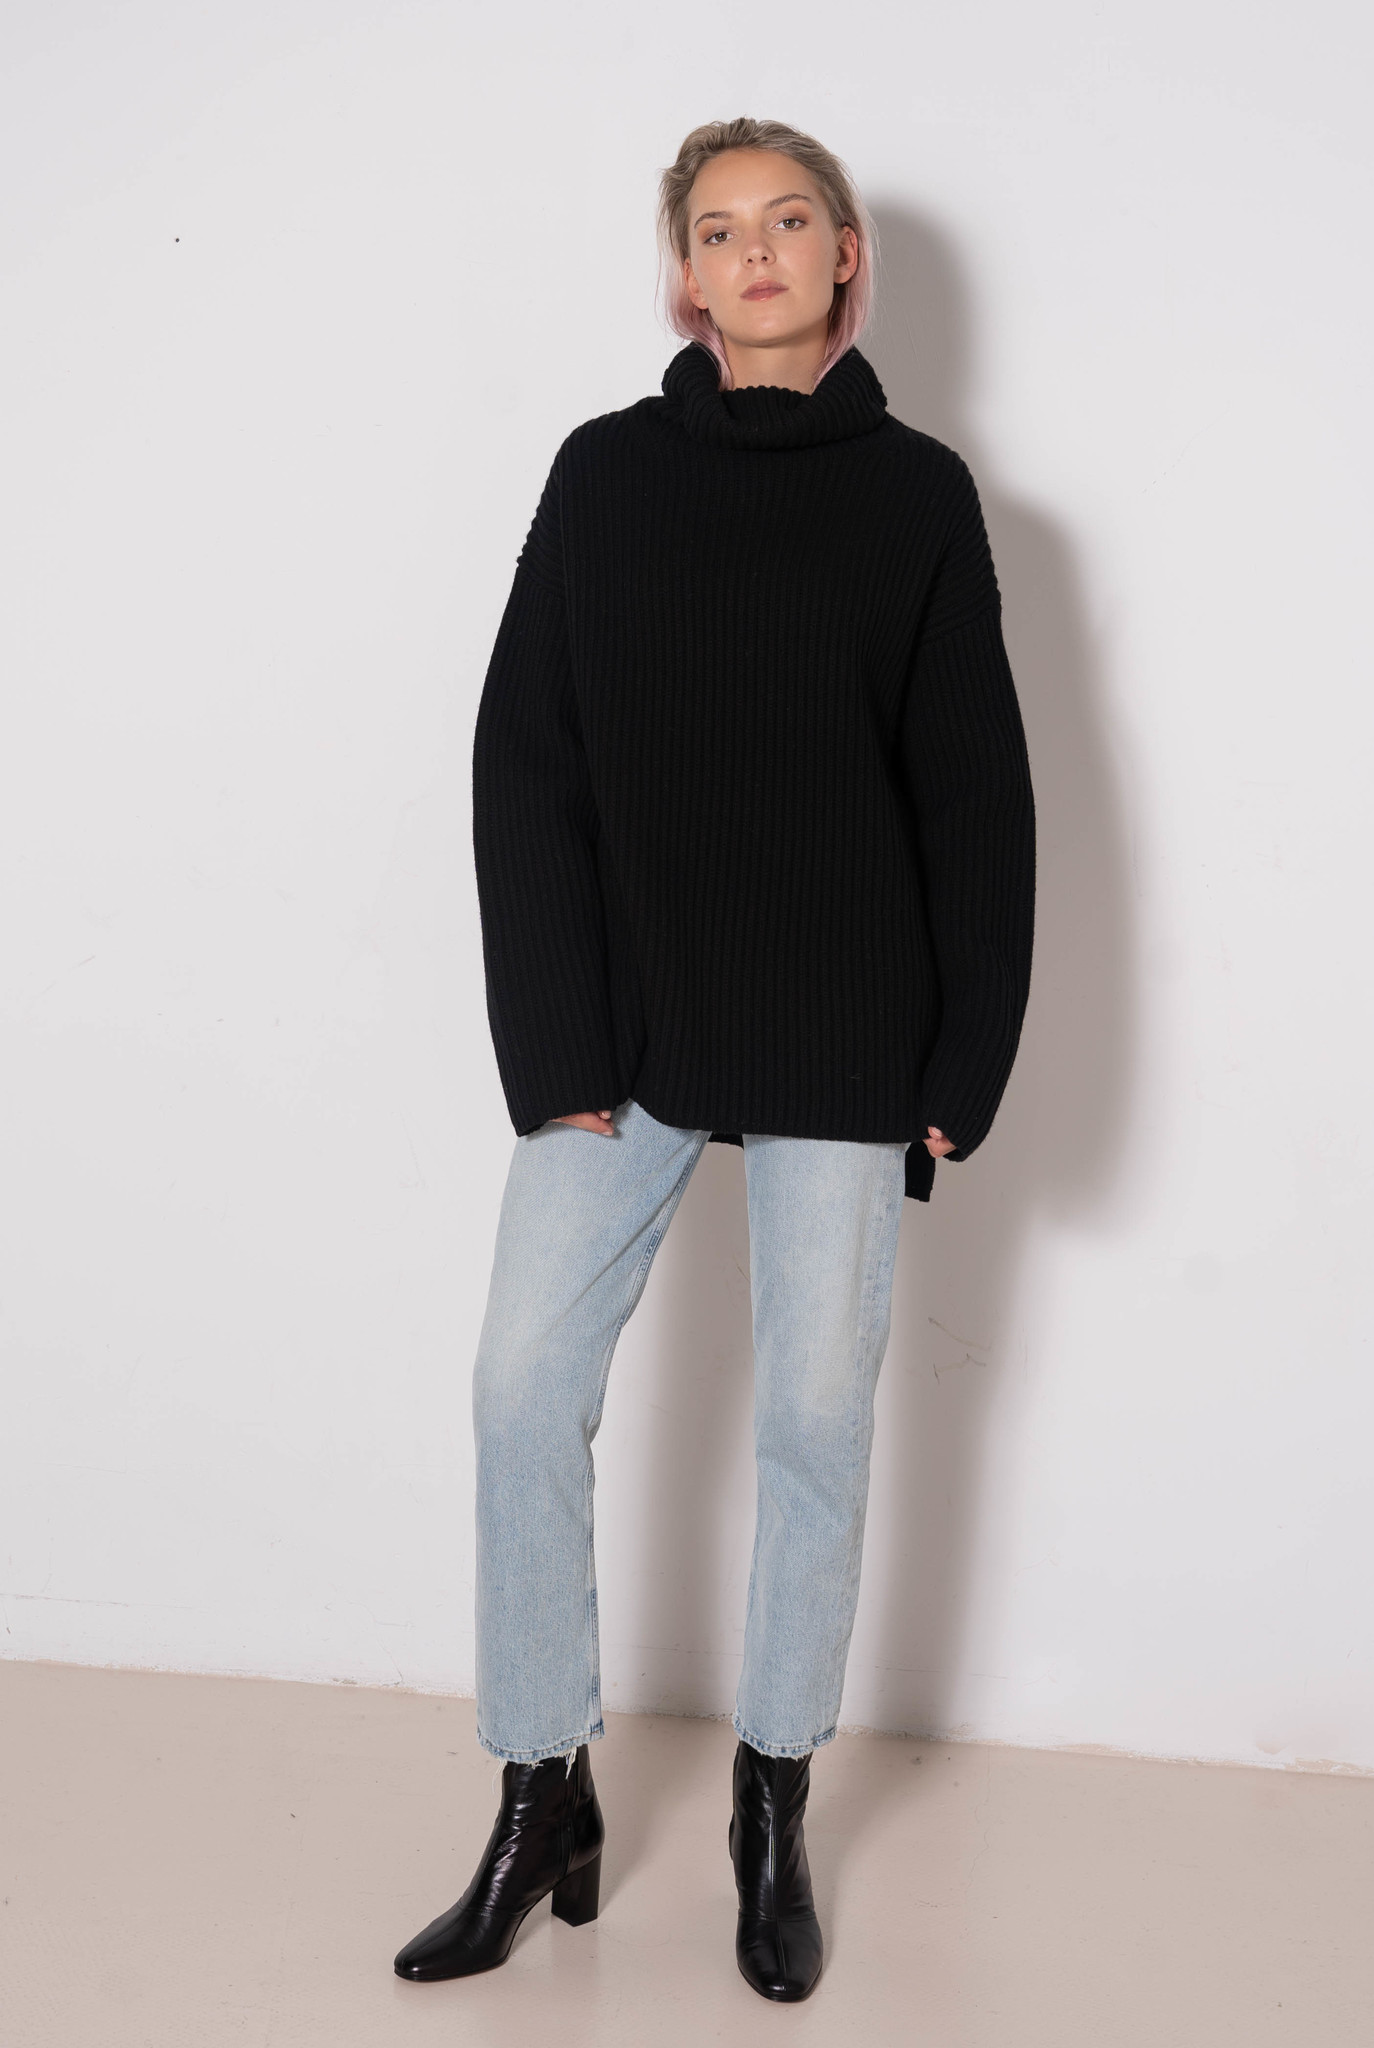 High Nk sweater Cardigan Stitch Black